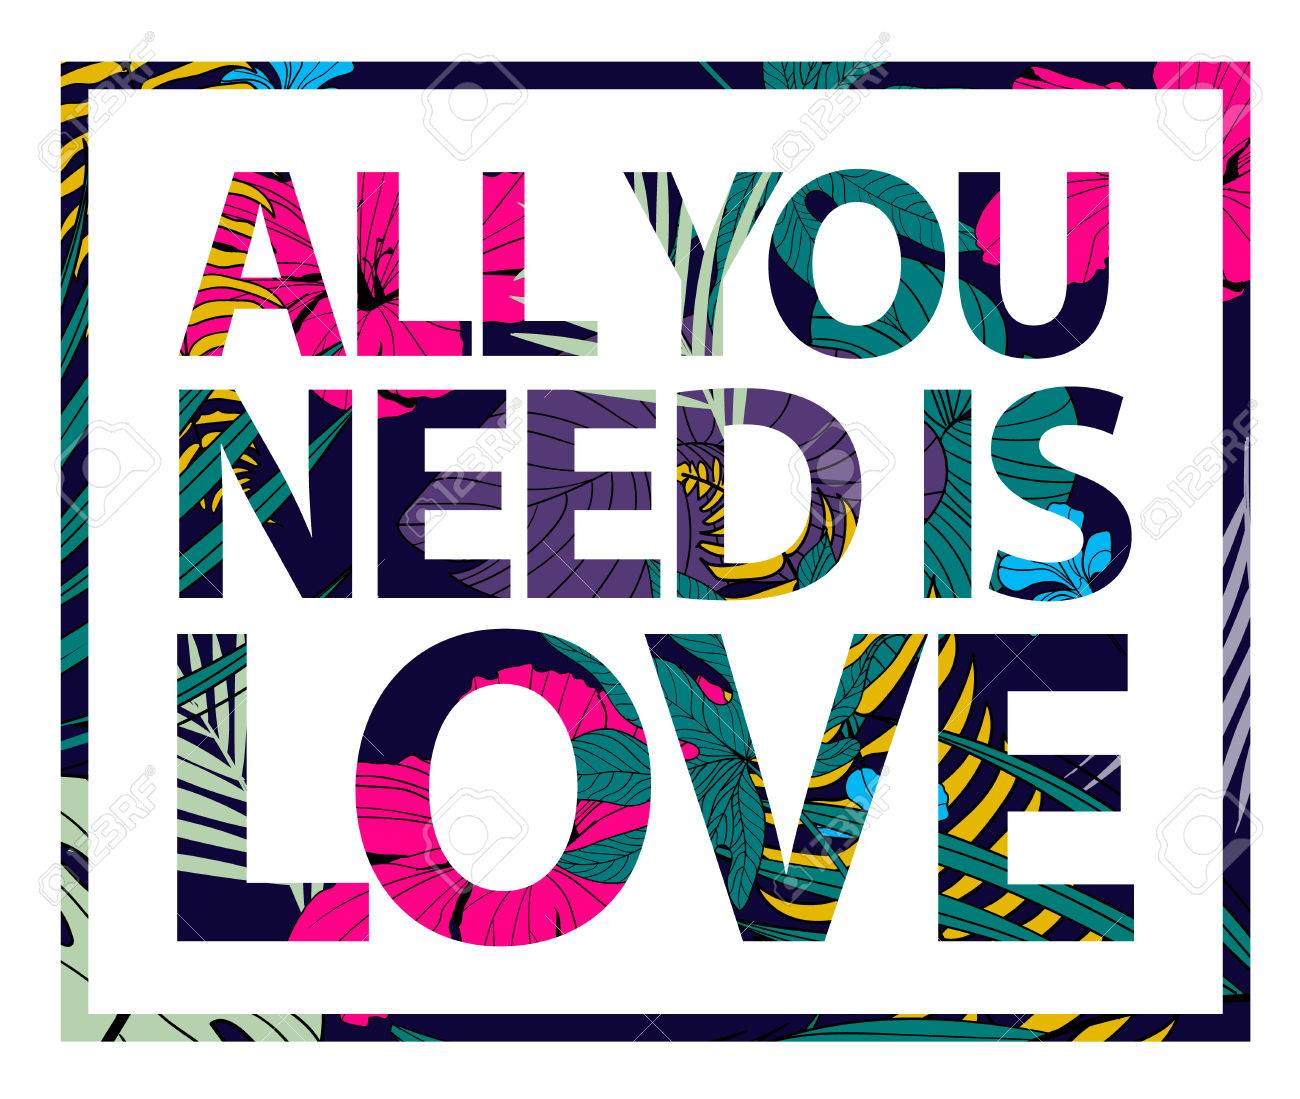 b8a1652421 All you need is love. Valentine card, romantic poster, banner, cover. Tropical  print slogan. For t-shirt or other uses